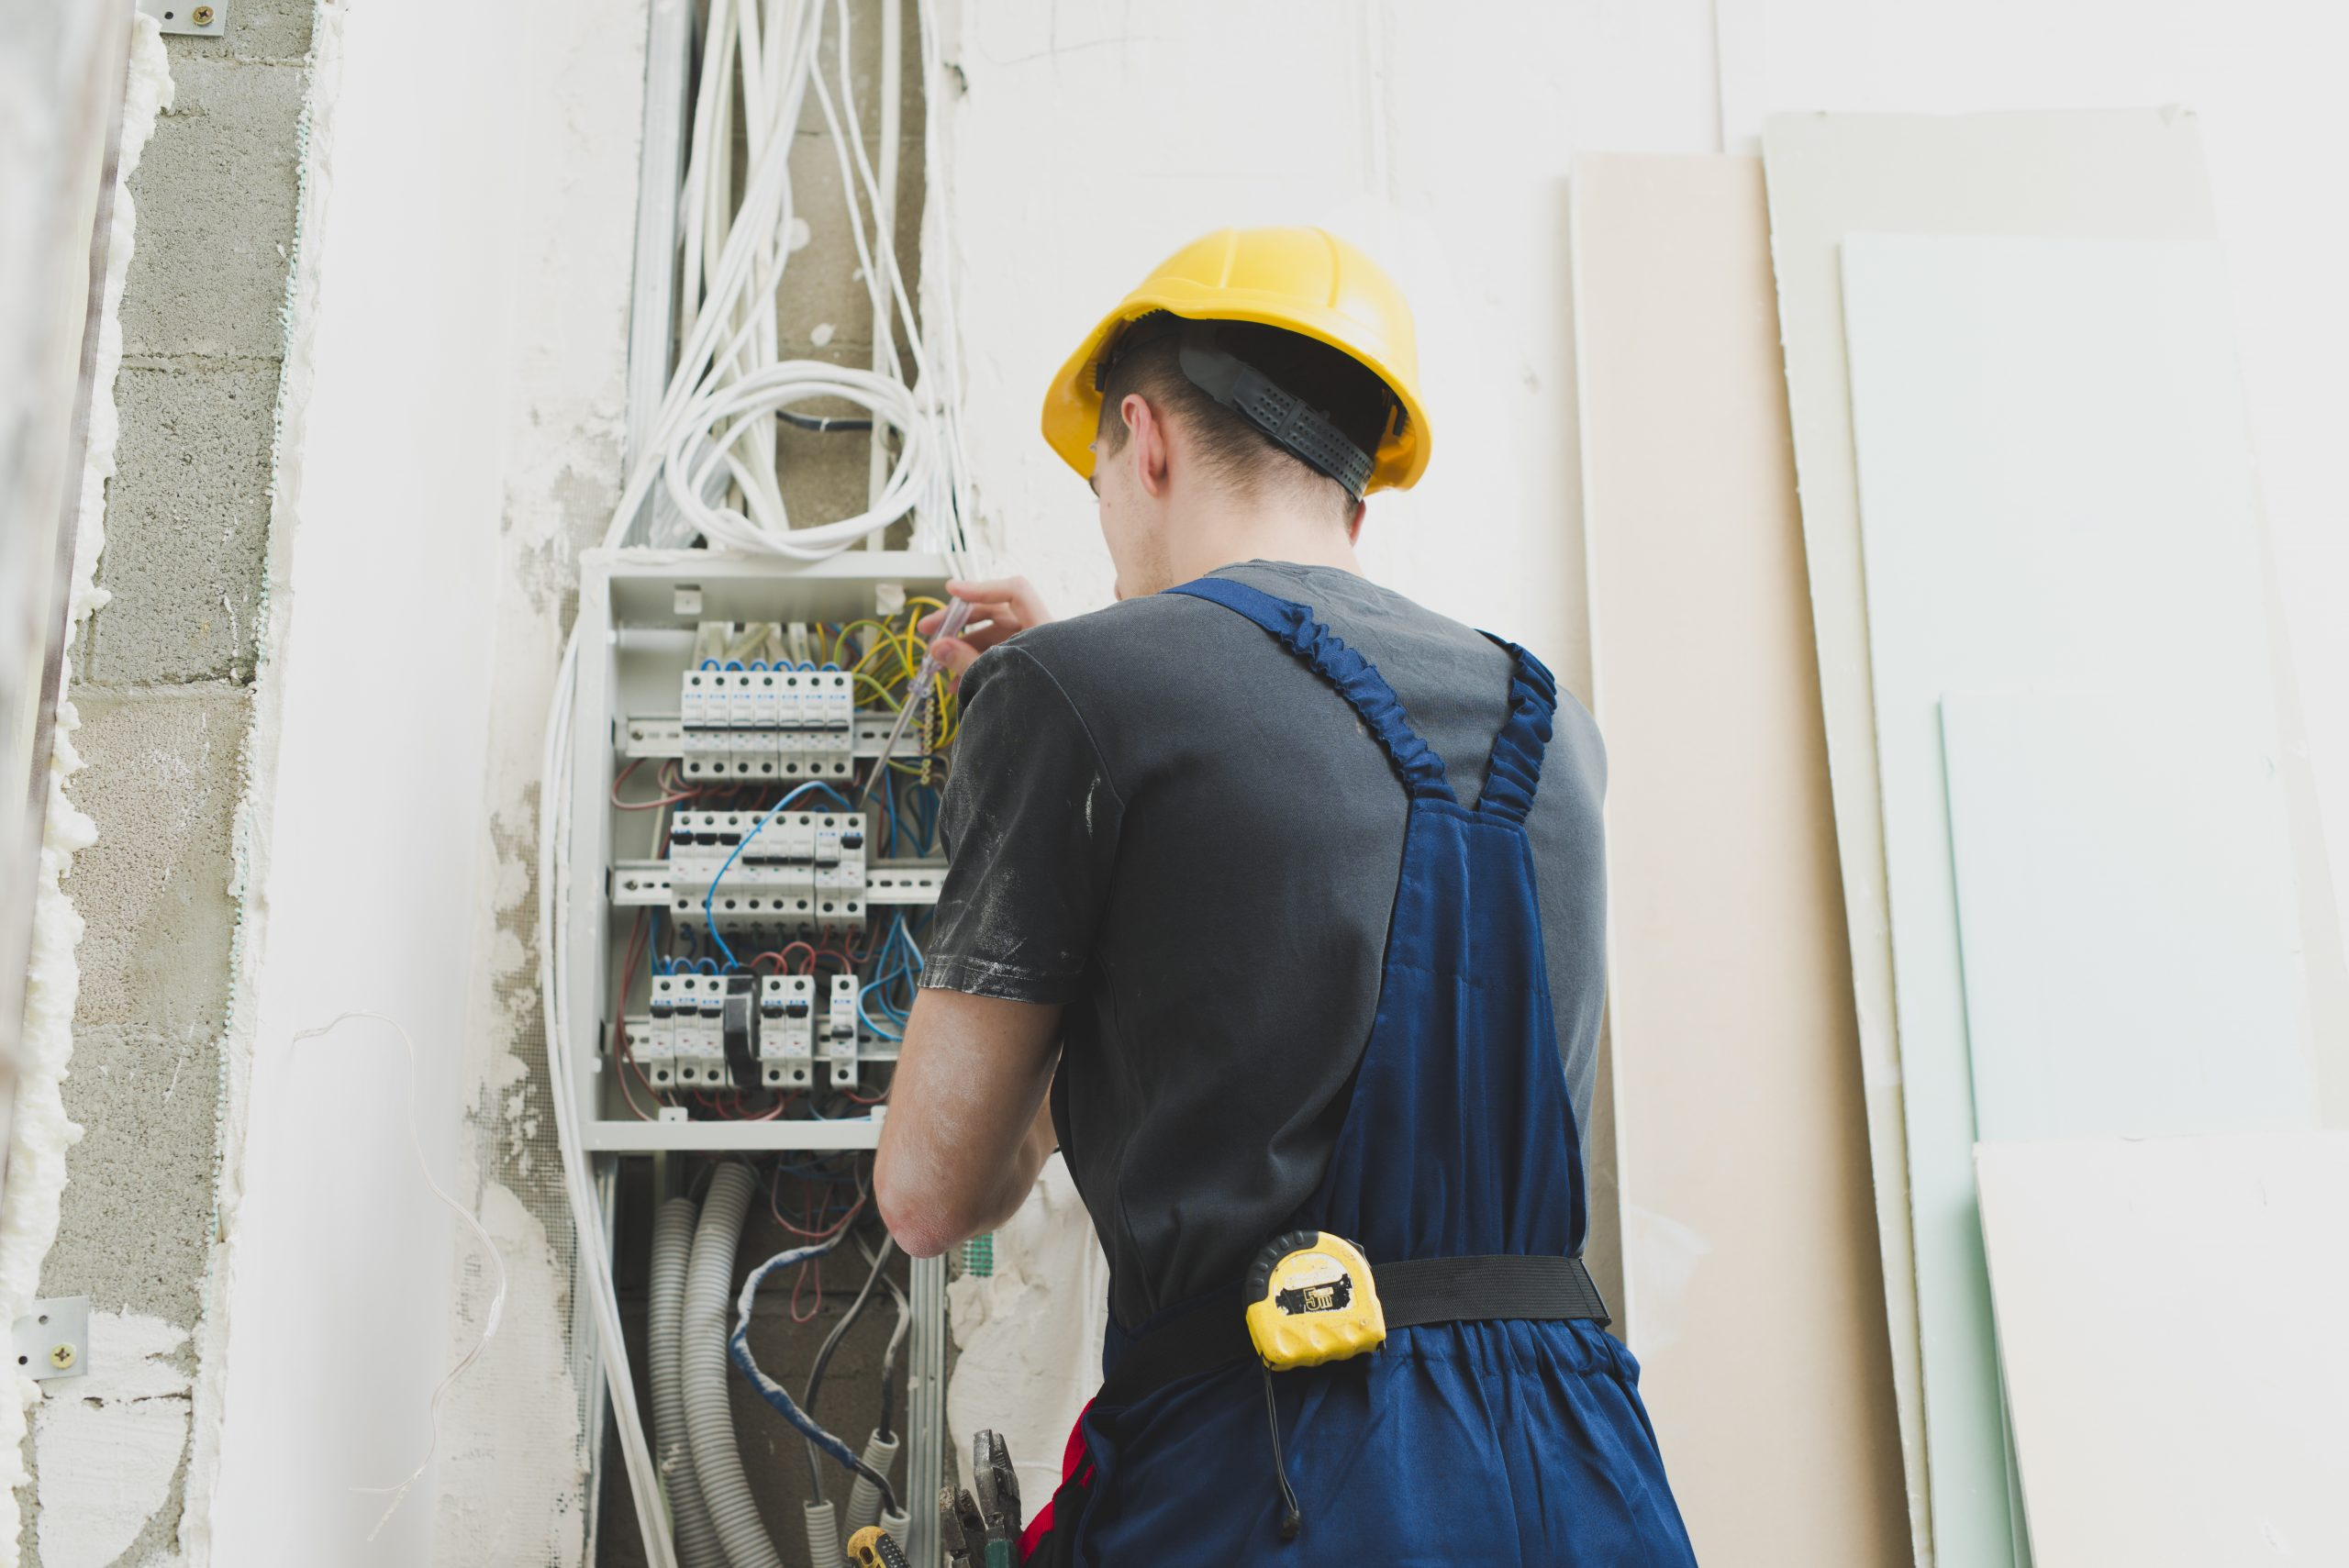 young-man-working-with-wires-at-switcher